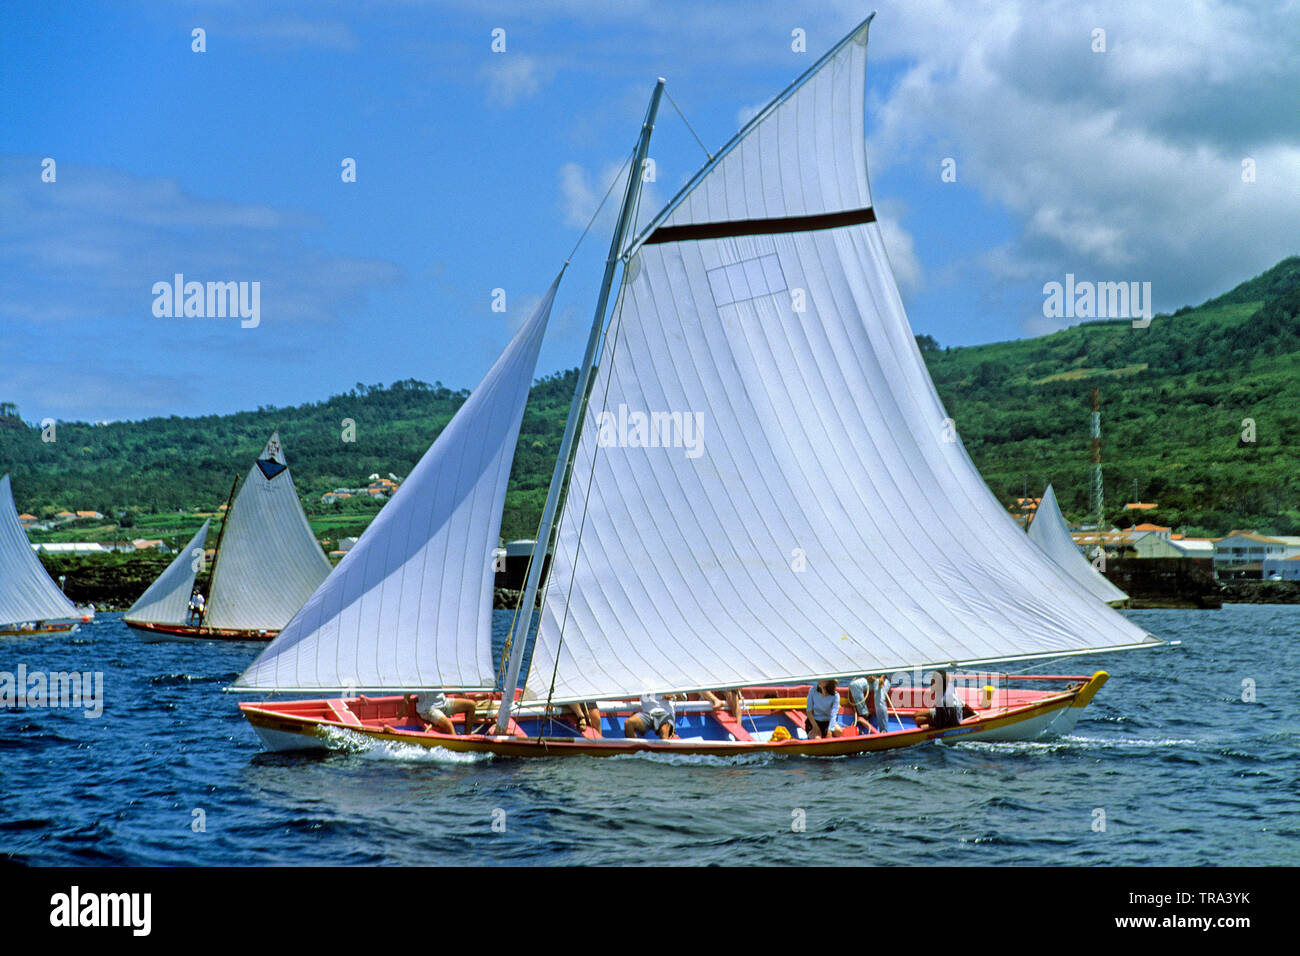 Former whaling boats at traditionall annual whaling boat regatta, Sao Roque, Pico island, Azores, Portugal - Stock Image